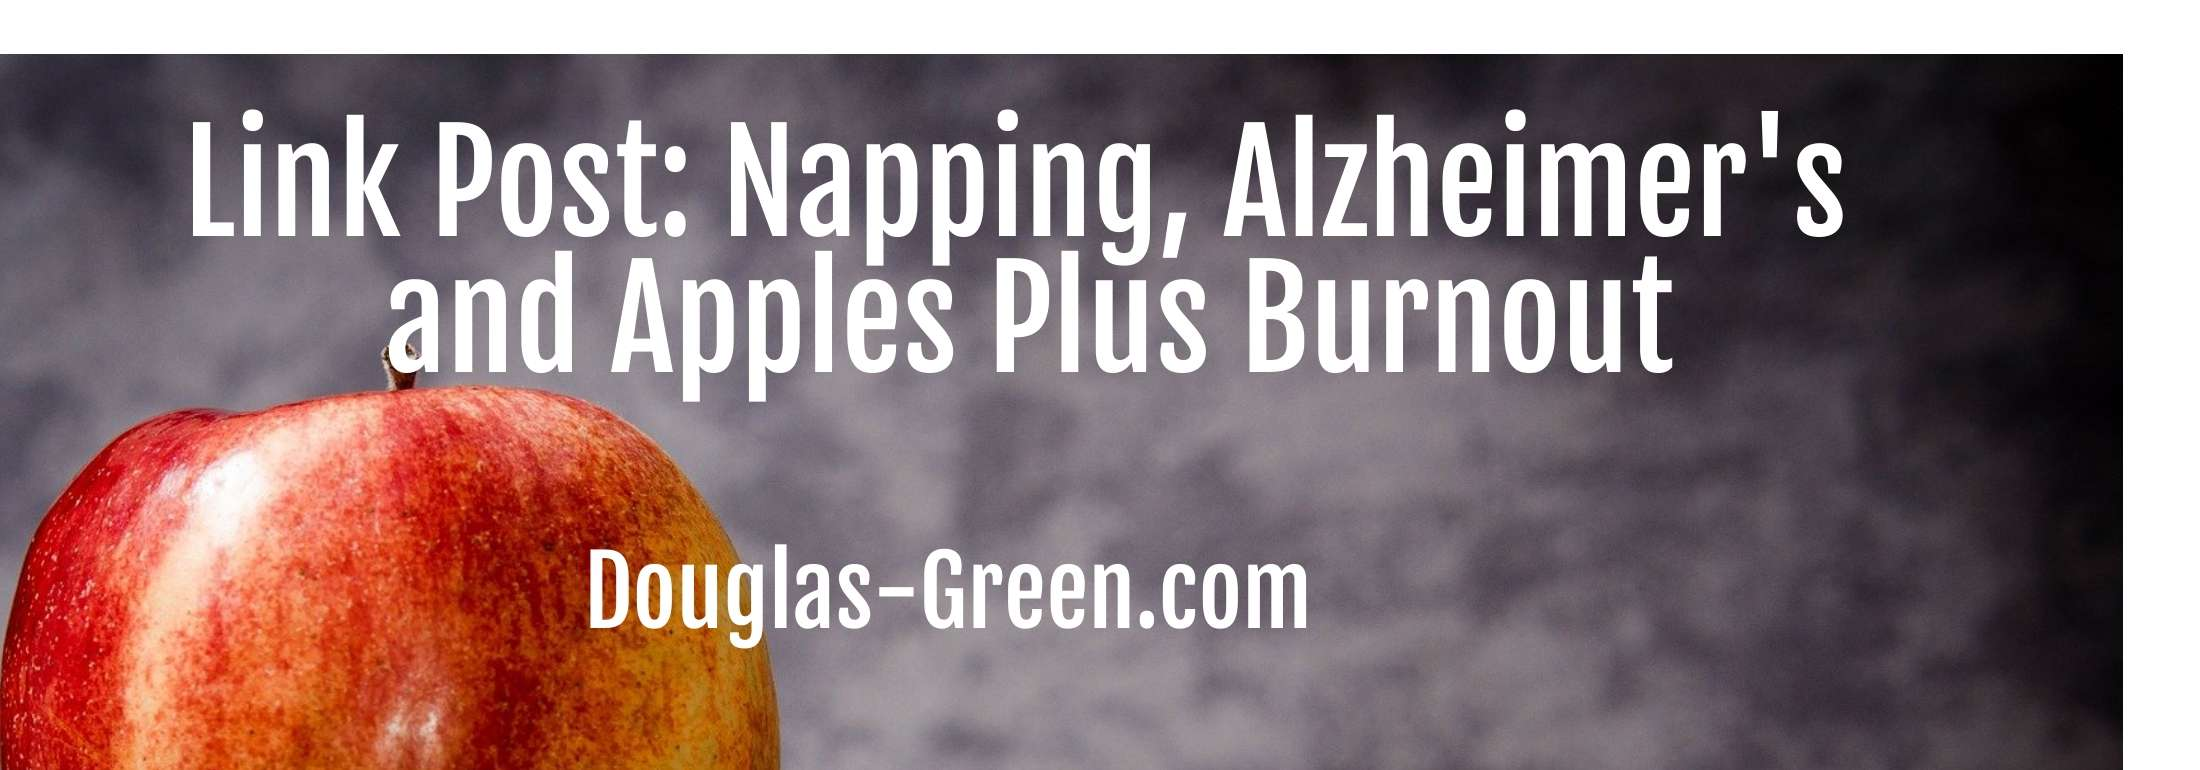 Link Post: Napping, Alzheimer's and Apples Plus Burnout